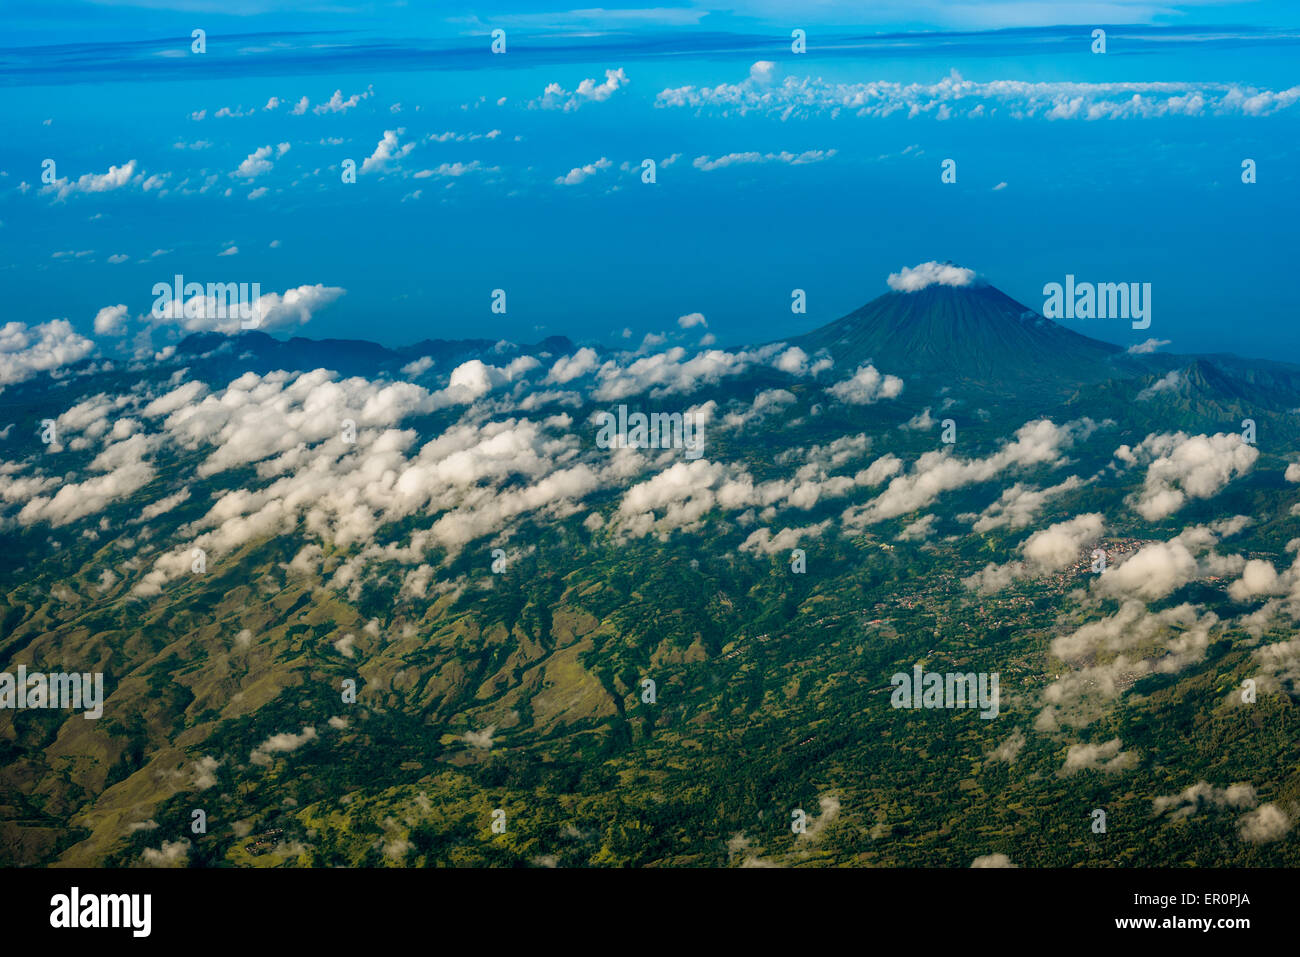 Aerial view of Mount Inerie near Bajawa, Flores, Indonesia. - Stock Image